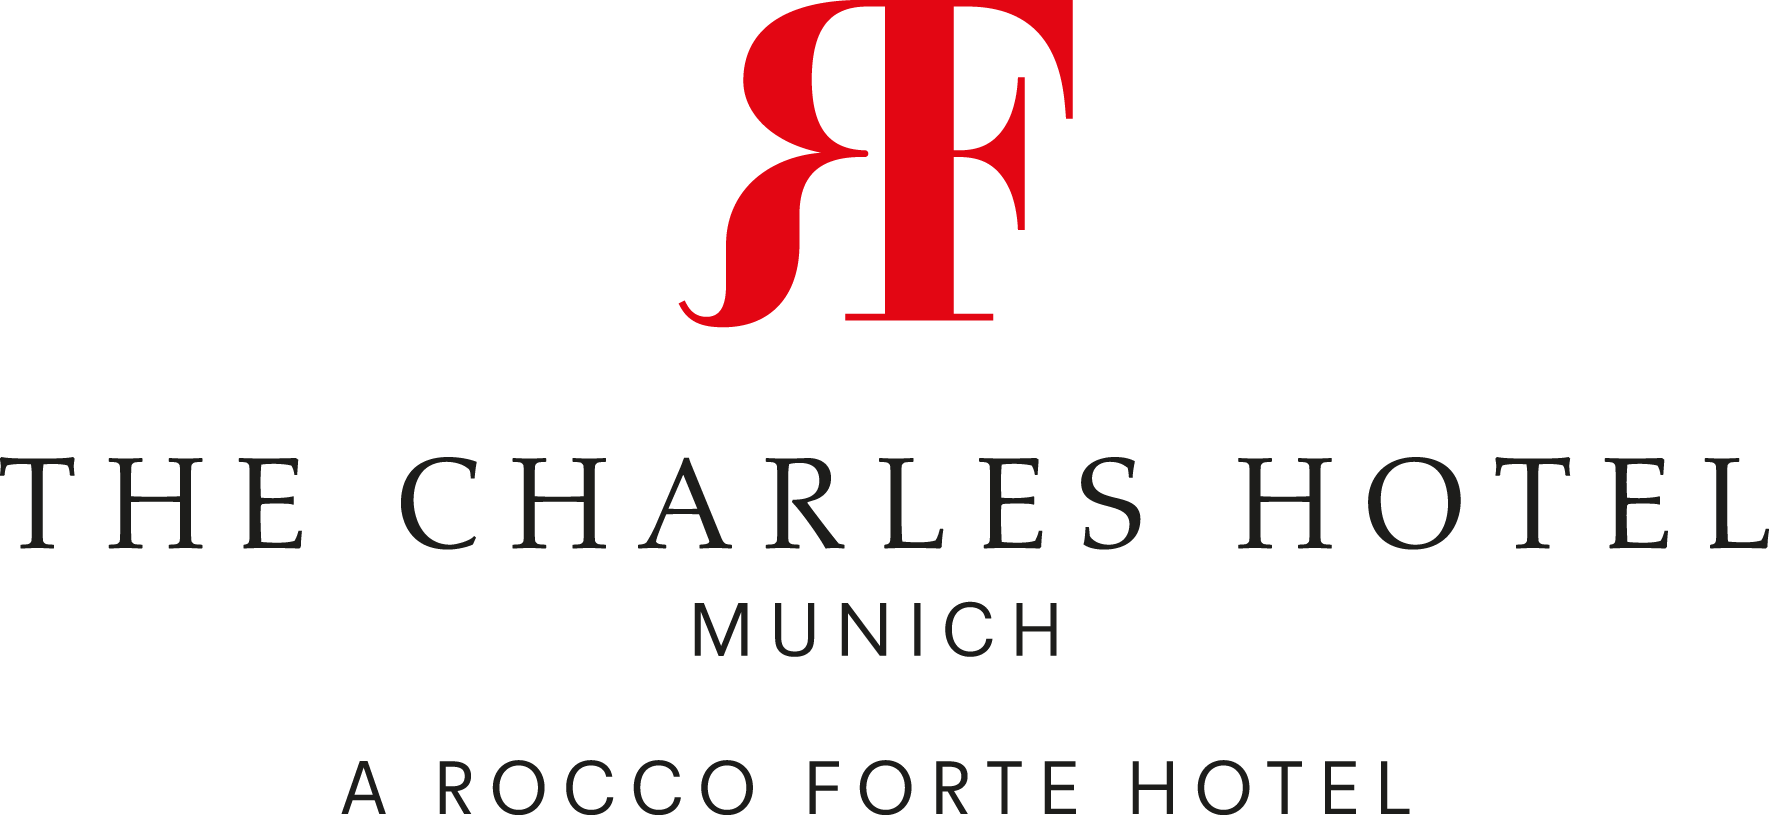 The Charles Hotel Rocco Forte Logo